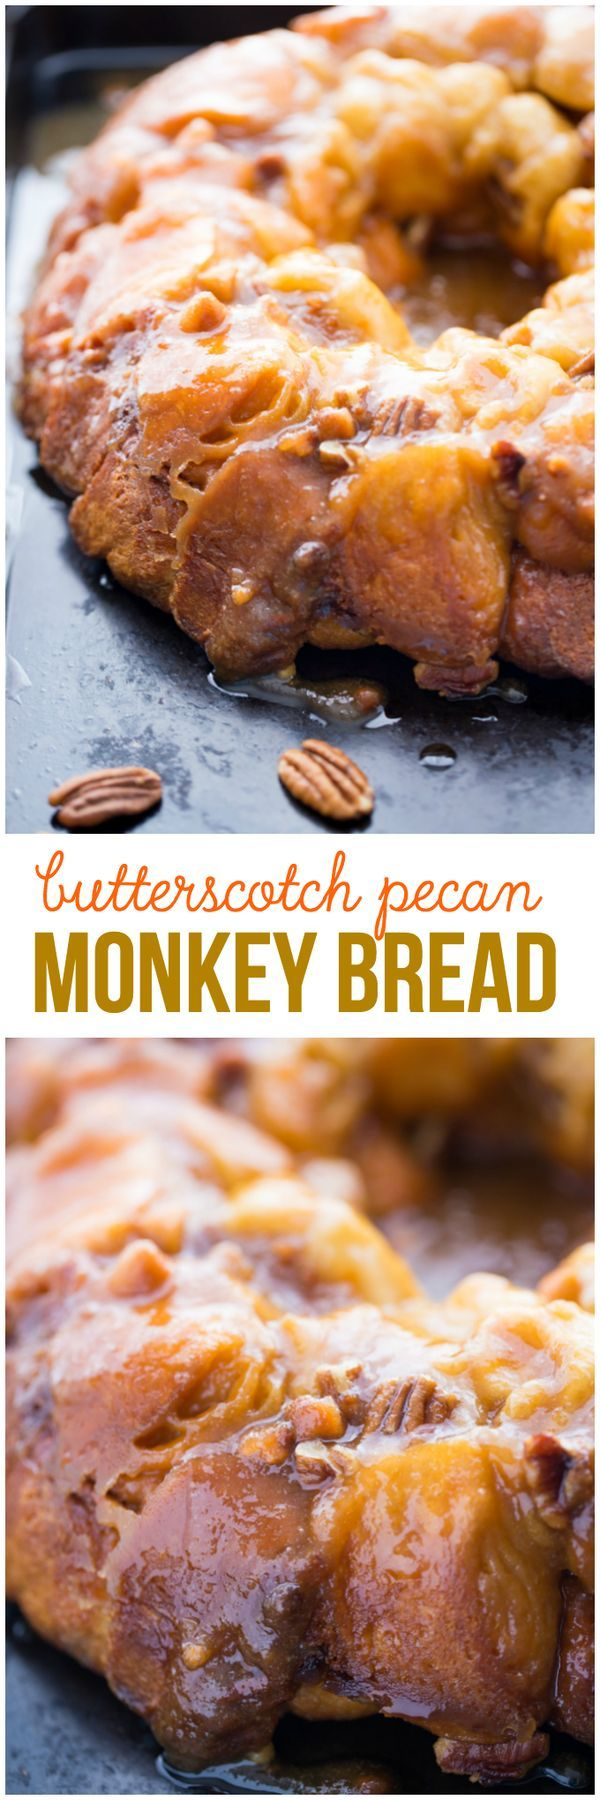 Butterscotch Pecan Monkey Bread - Ridiculously easy and sticky sweet! This monkey bread is slathered in a warm butterscotch pecan sauce and is so decadent.  recipe cake sugar desserts